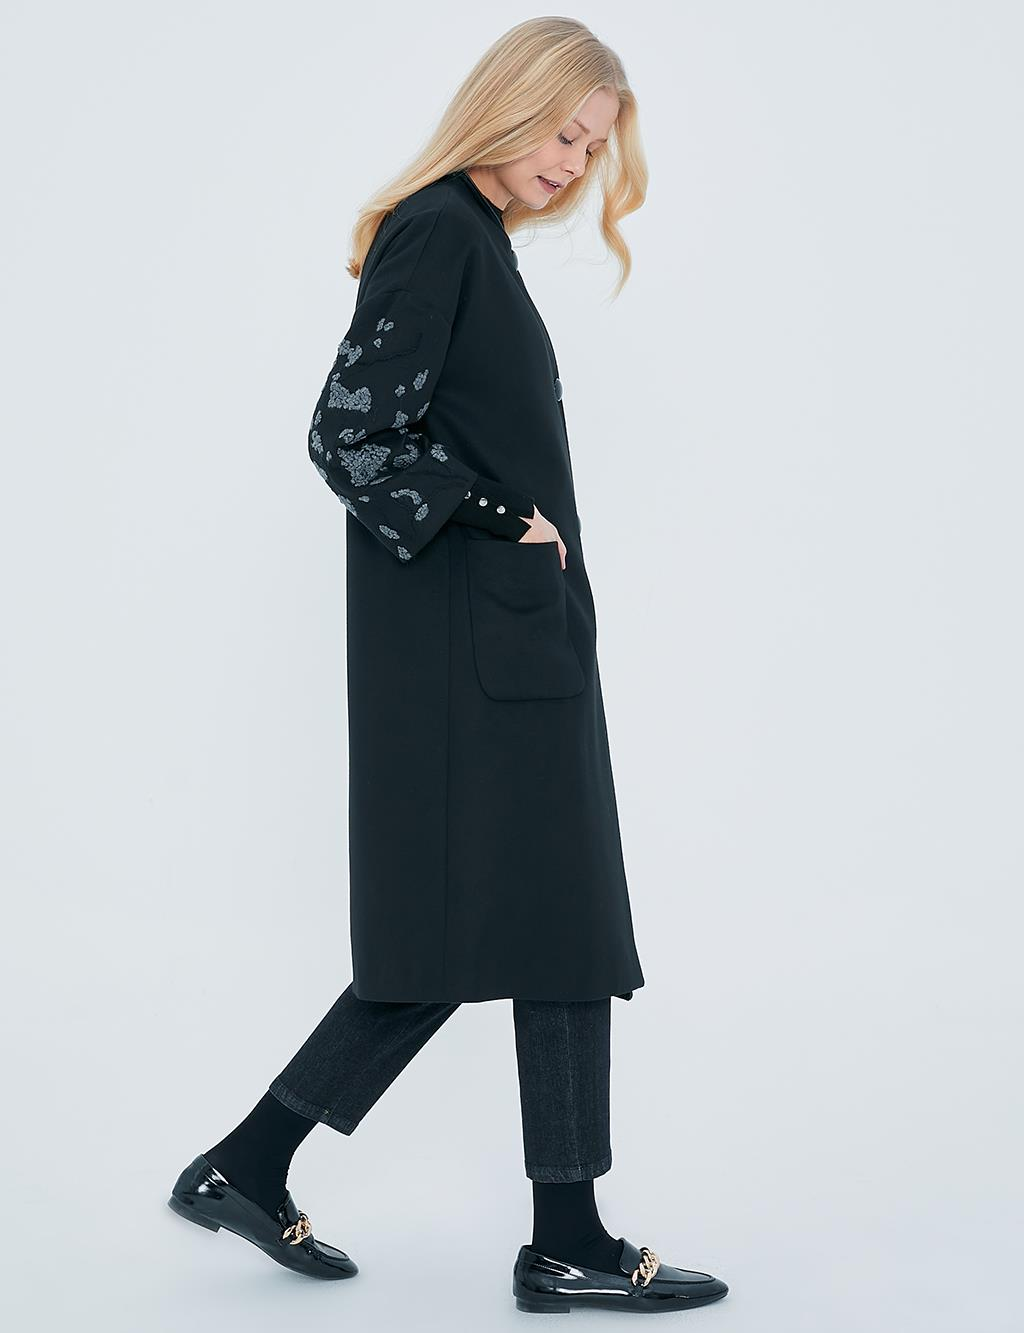 Embroidered Sleeve Pocket Coat A20 17001 Black